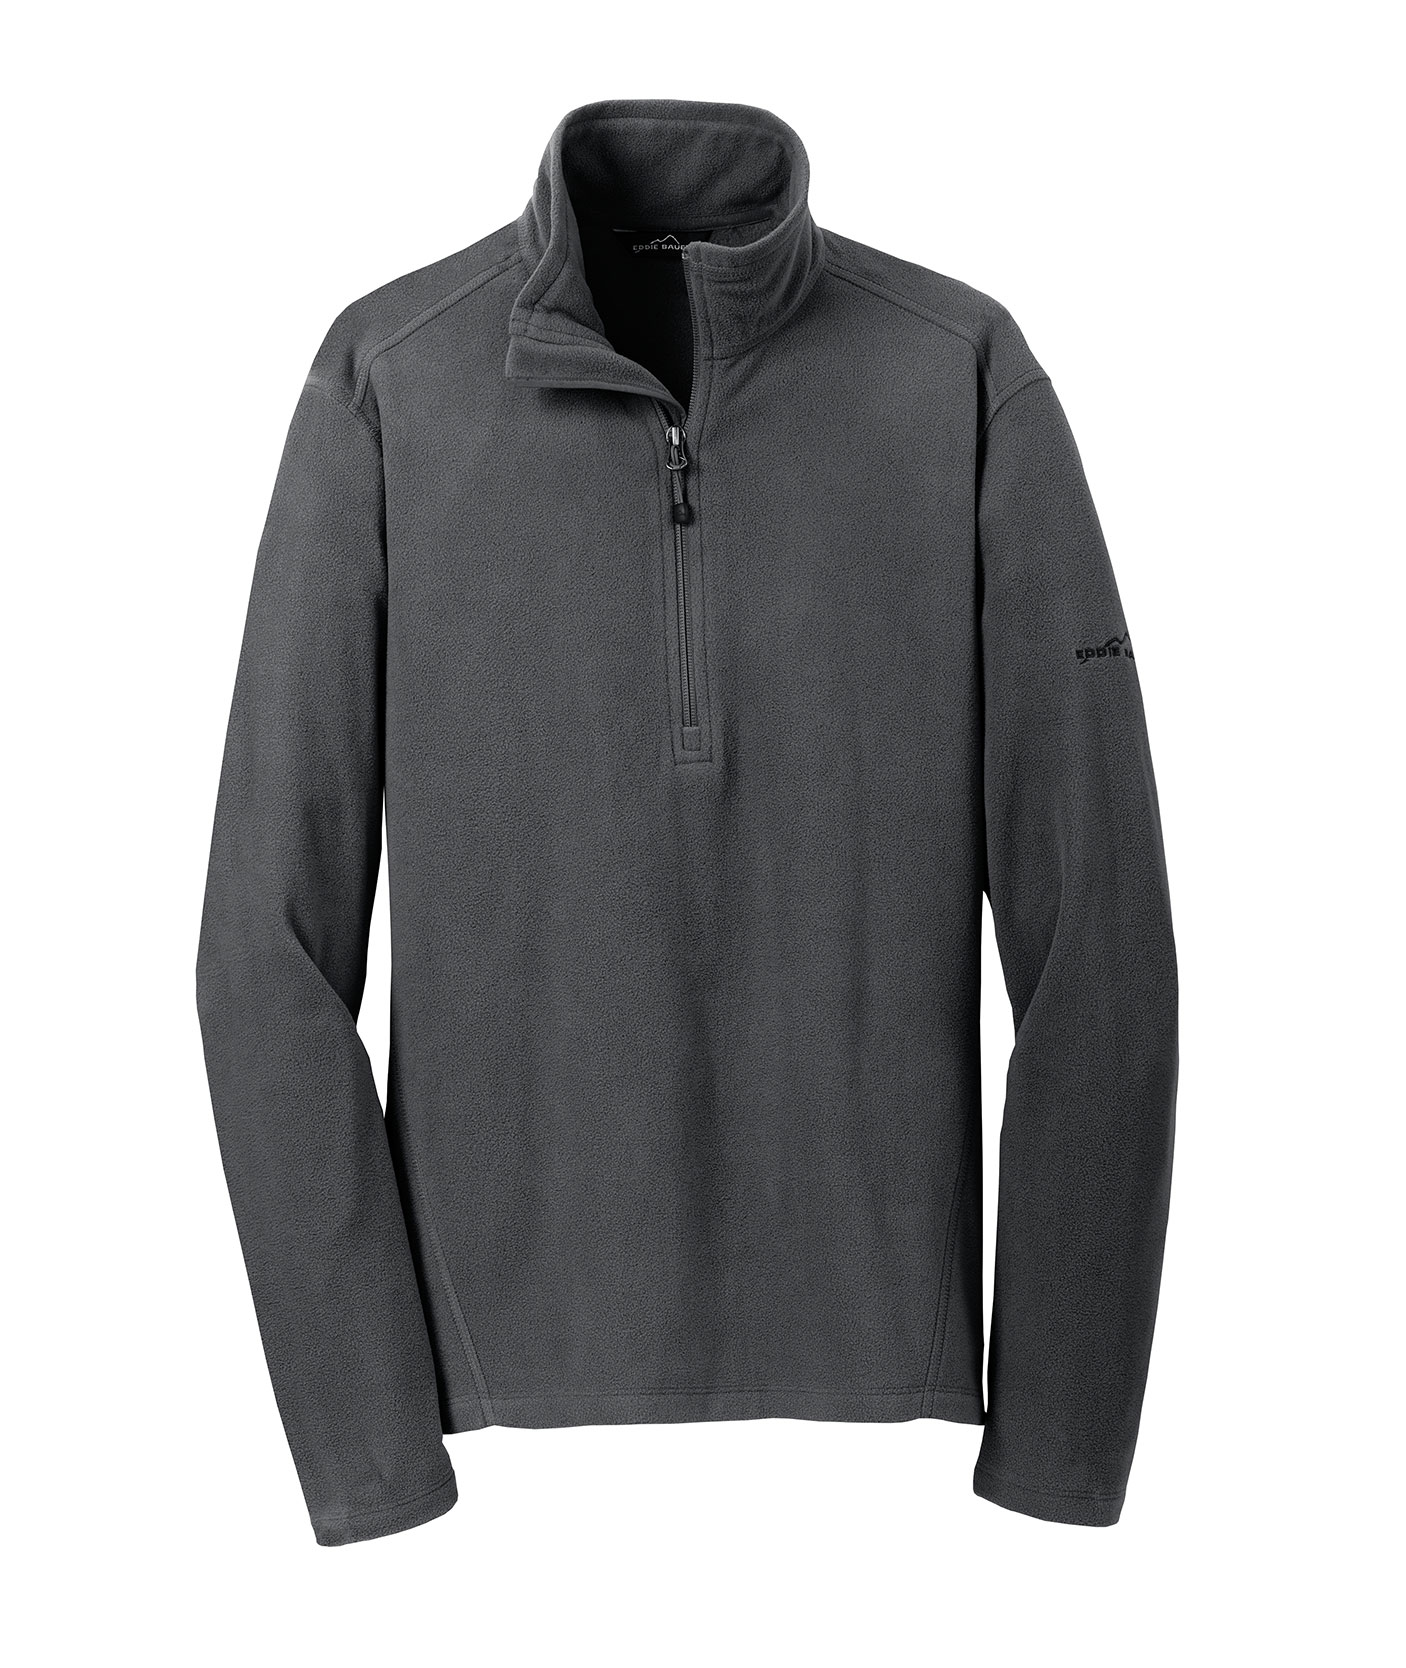 Eddie Bauer® Mens 1/2 Zip Microfleece Jacket